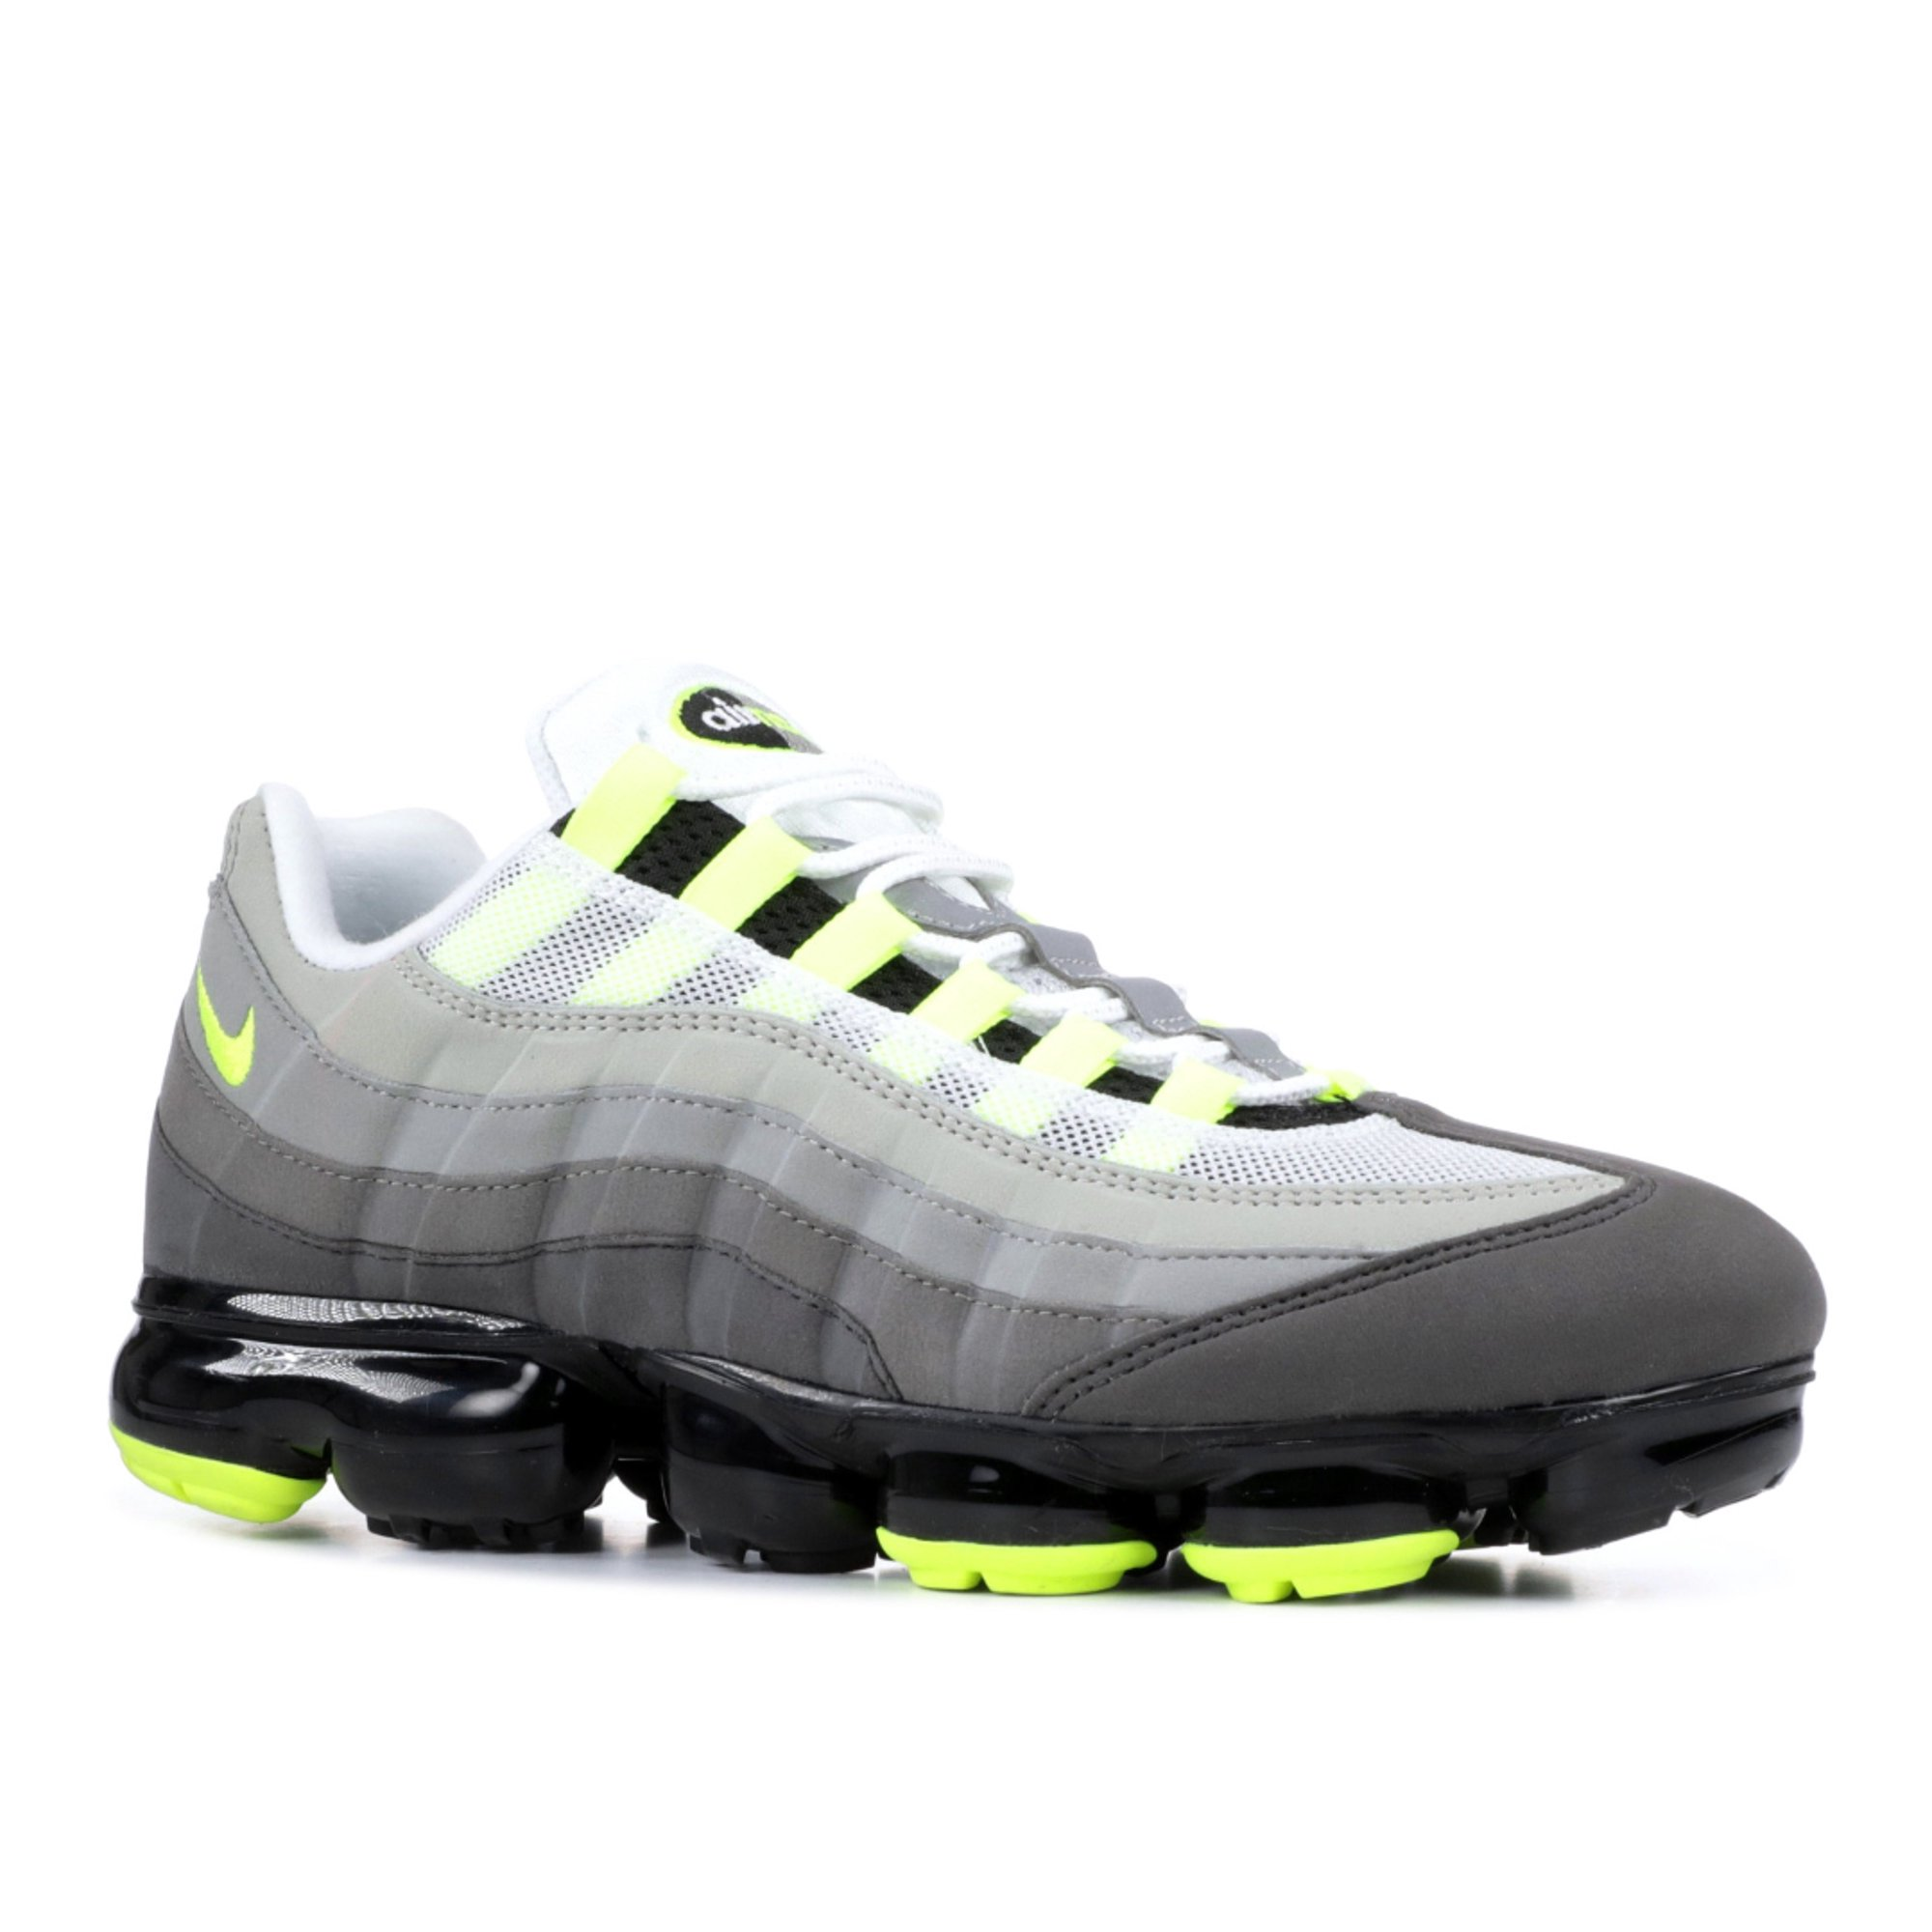 sports shoes e9c4c bfdac Nike - Men - Air Vapormax '95 'Neon' - Aj7292-001 - Size 10